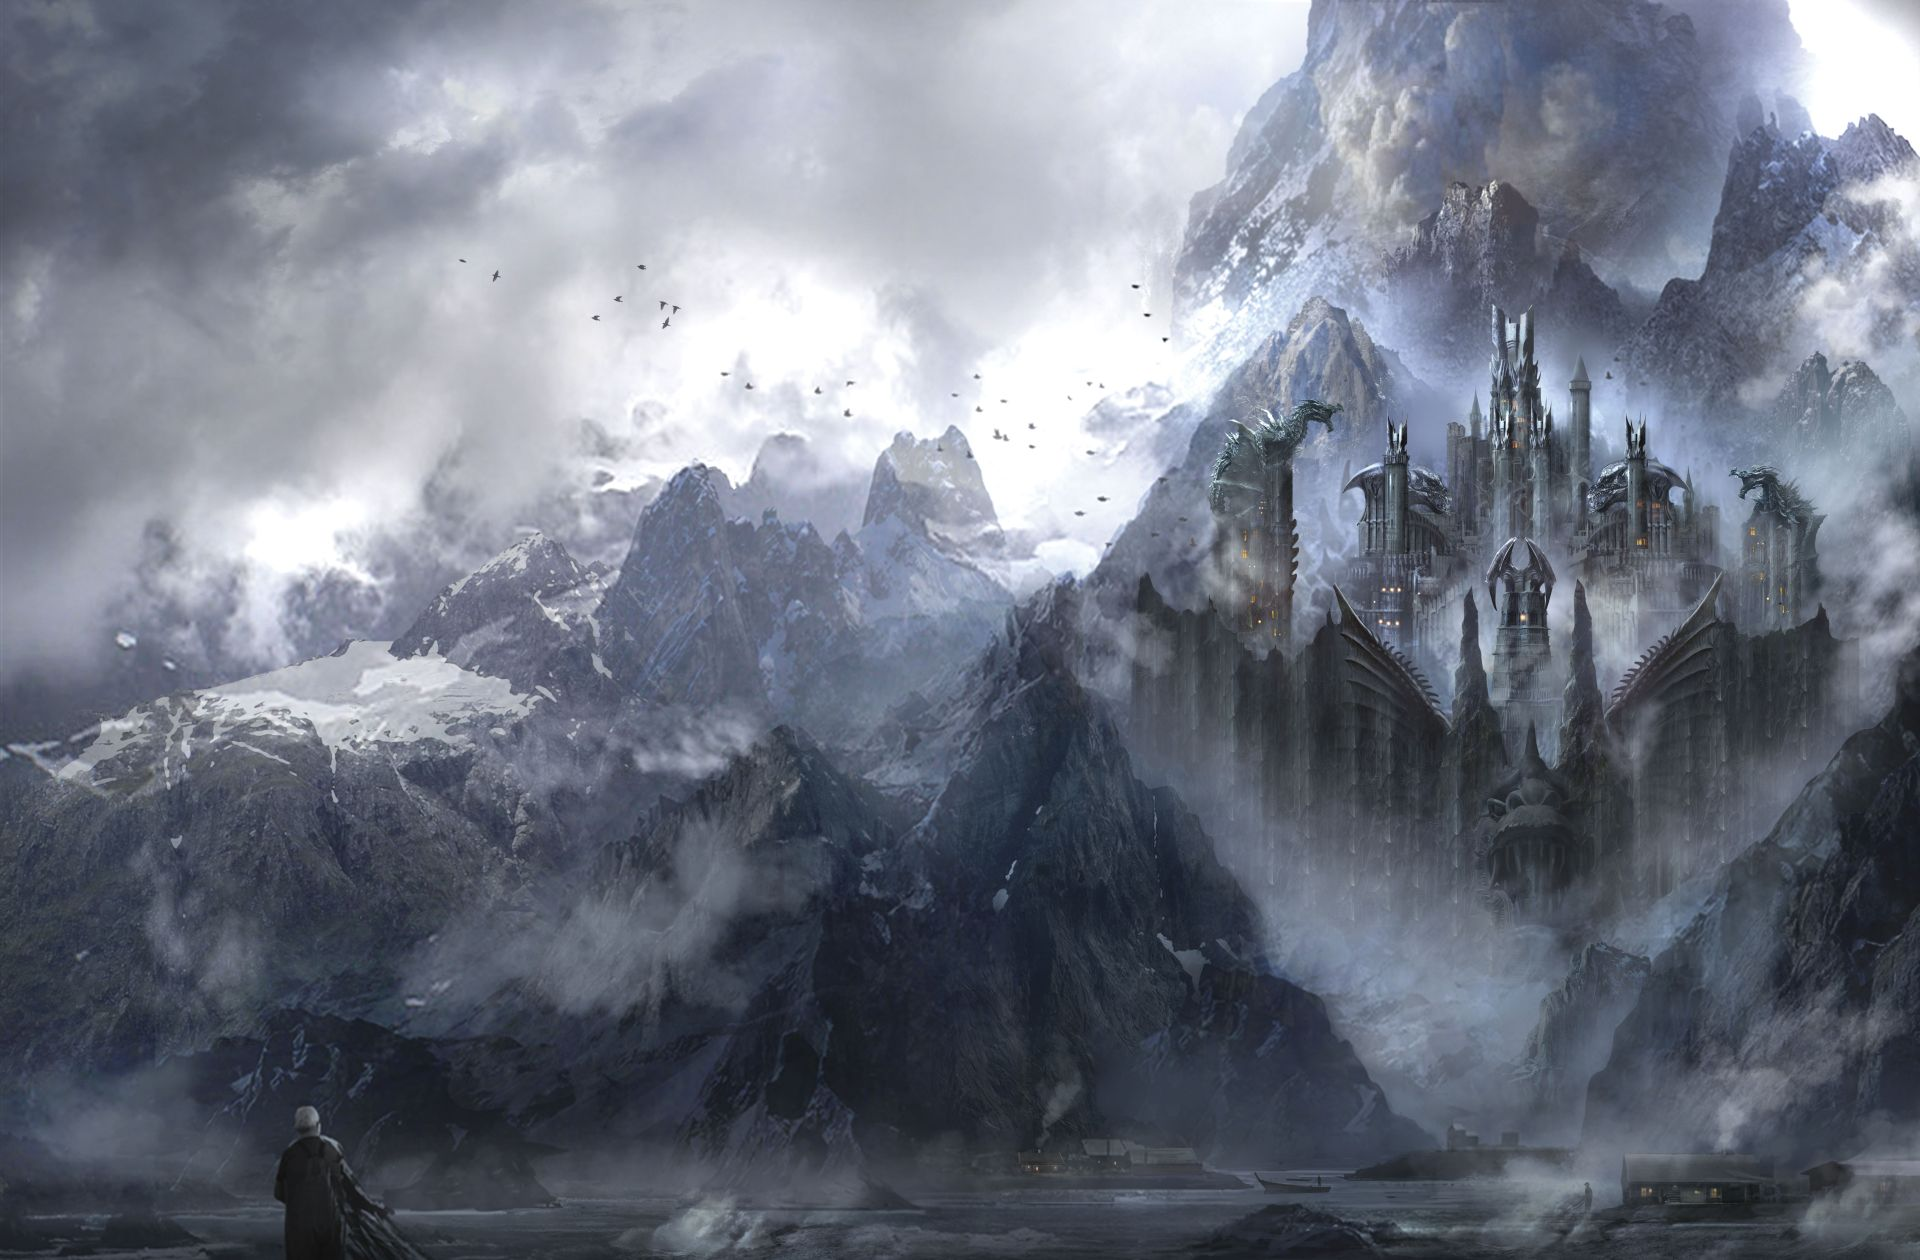 Game of Thrones Landscape mountain town